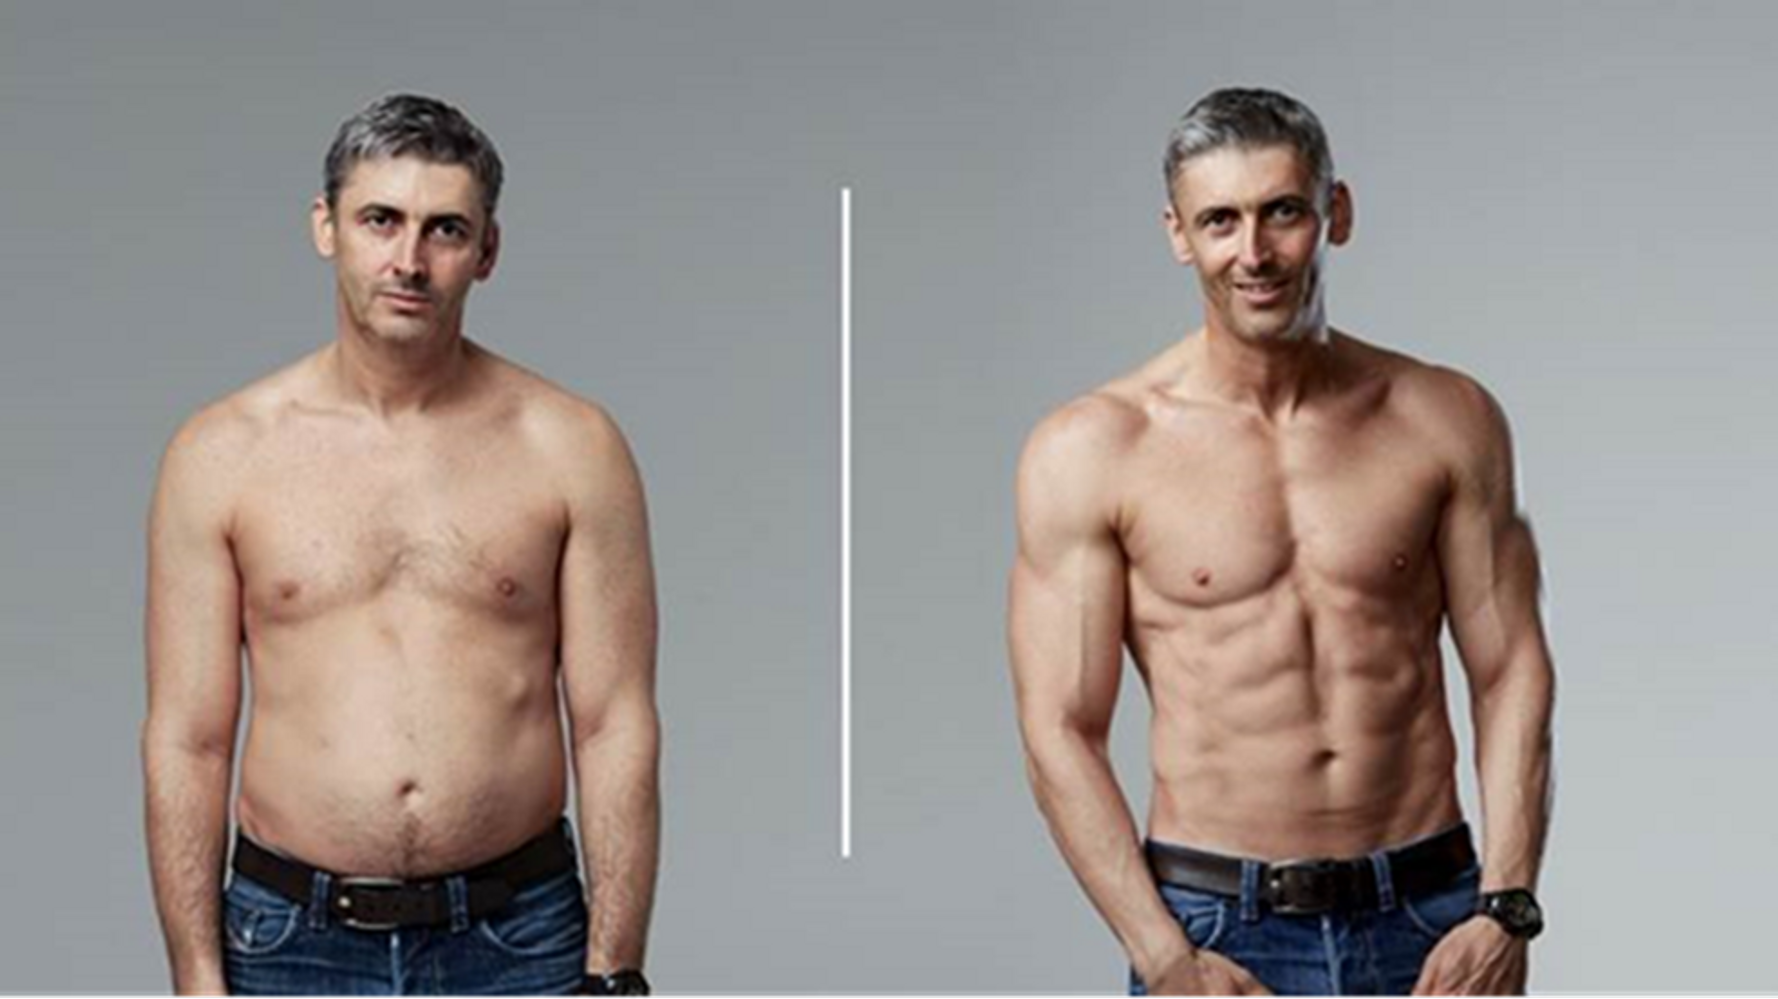 How This 45-Year-Old Transformed His Body In Just 12 Weeks